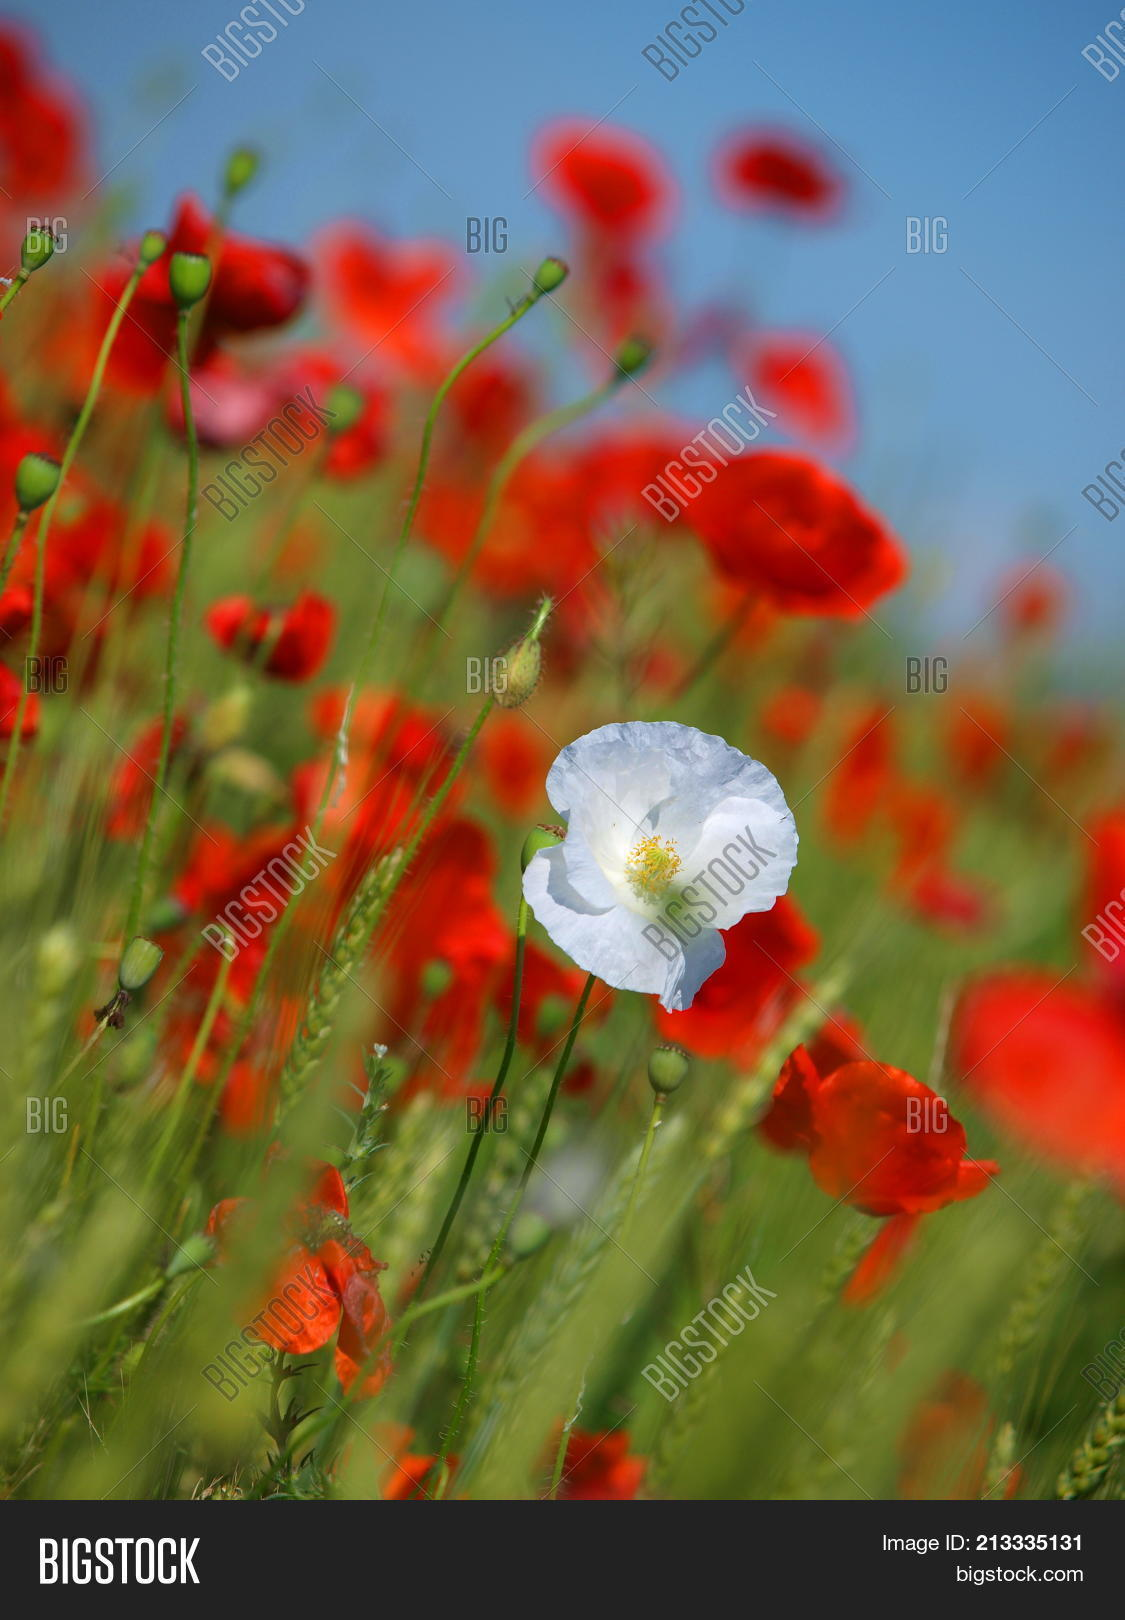 Poppy Flowers Growing Image Photo Free Trial Bigstock